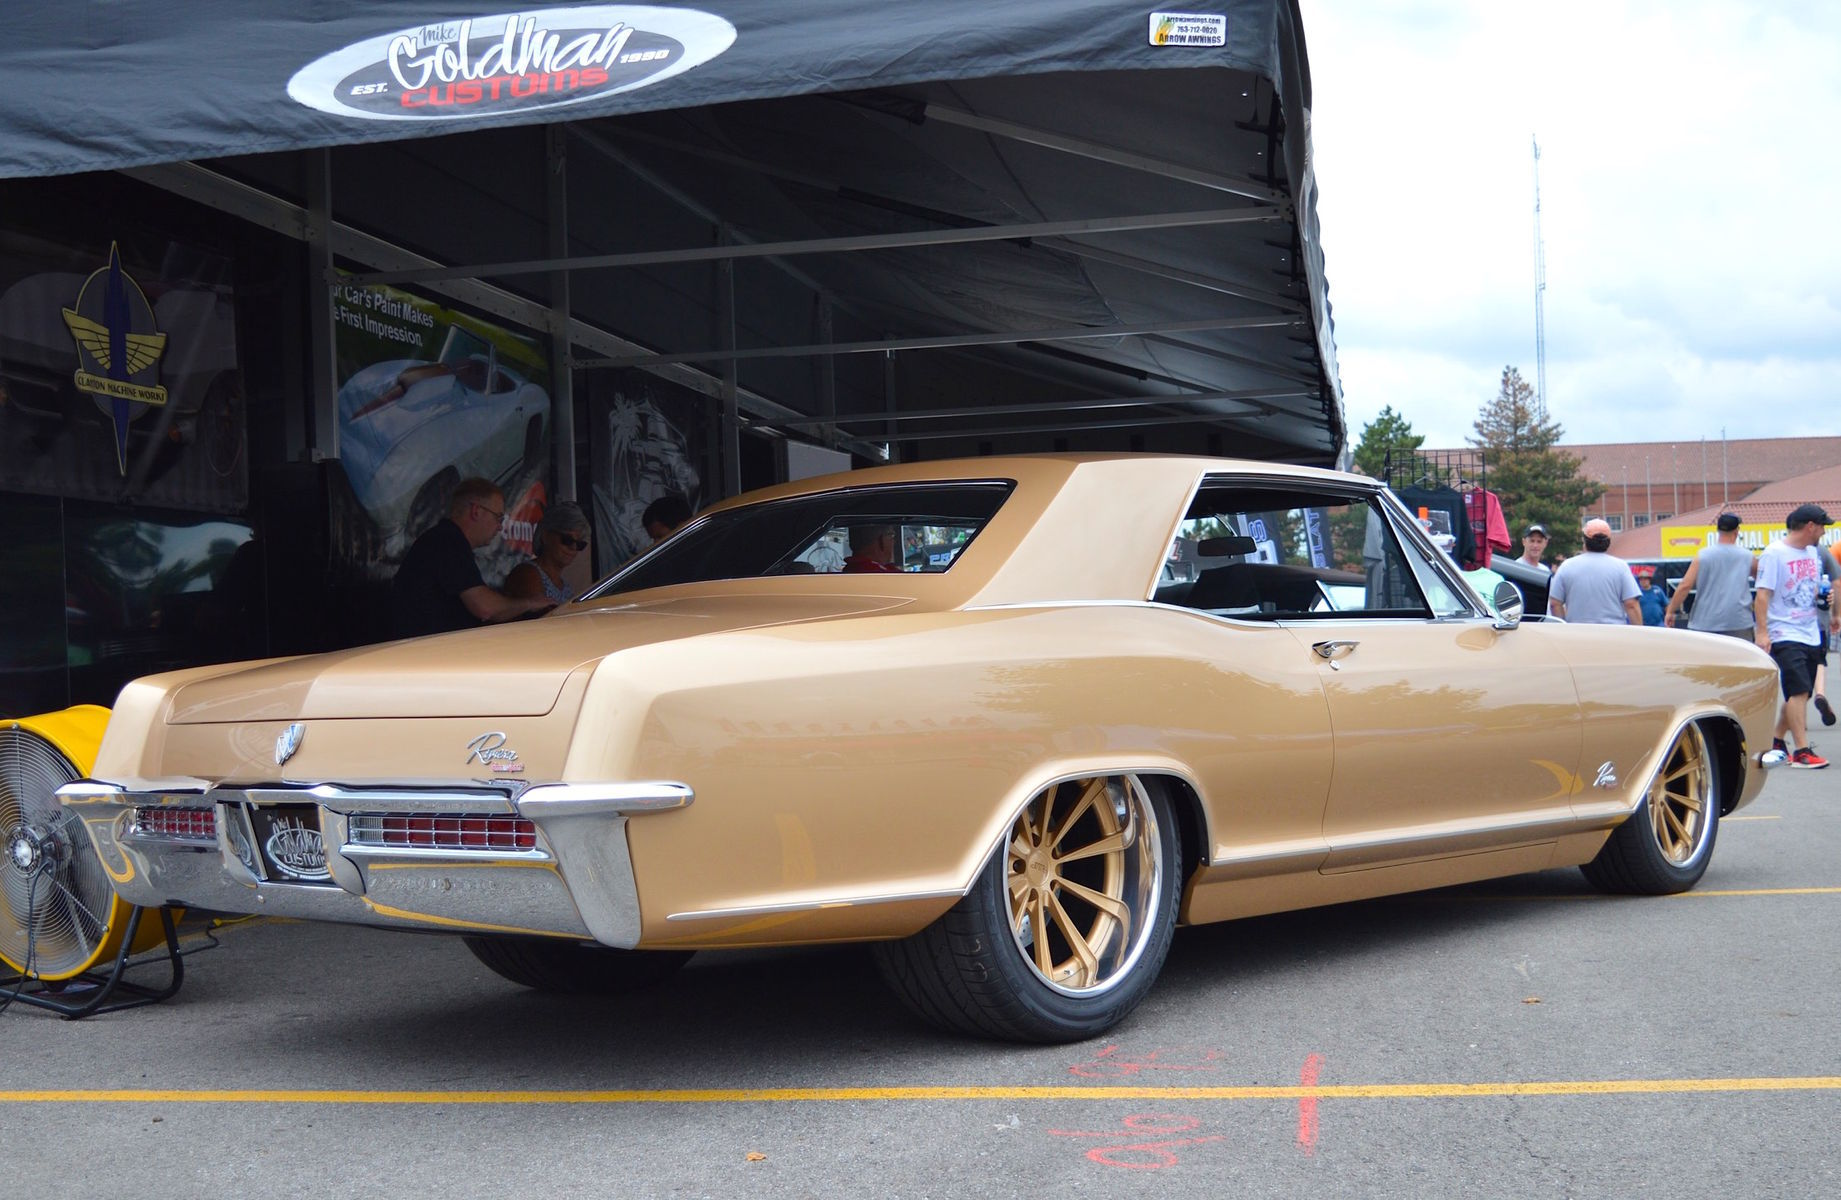 1965 Buick Riviera | 1965 Buick Riviera on Grip Equipped Dropkick Wheels Wins Builders Choice at 2016 Goodguys PPG Nationals